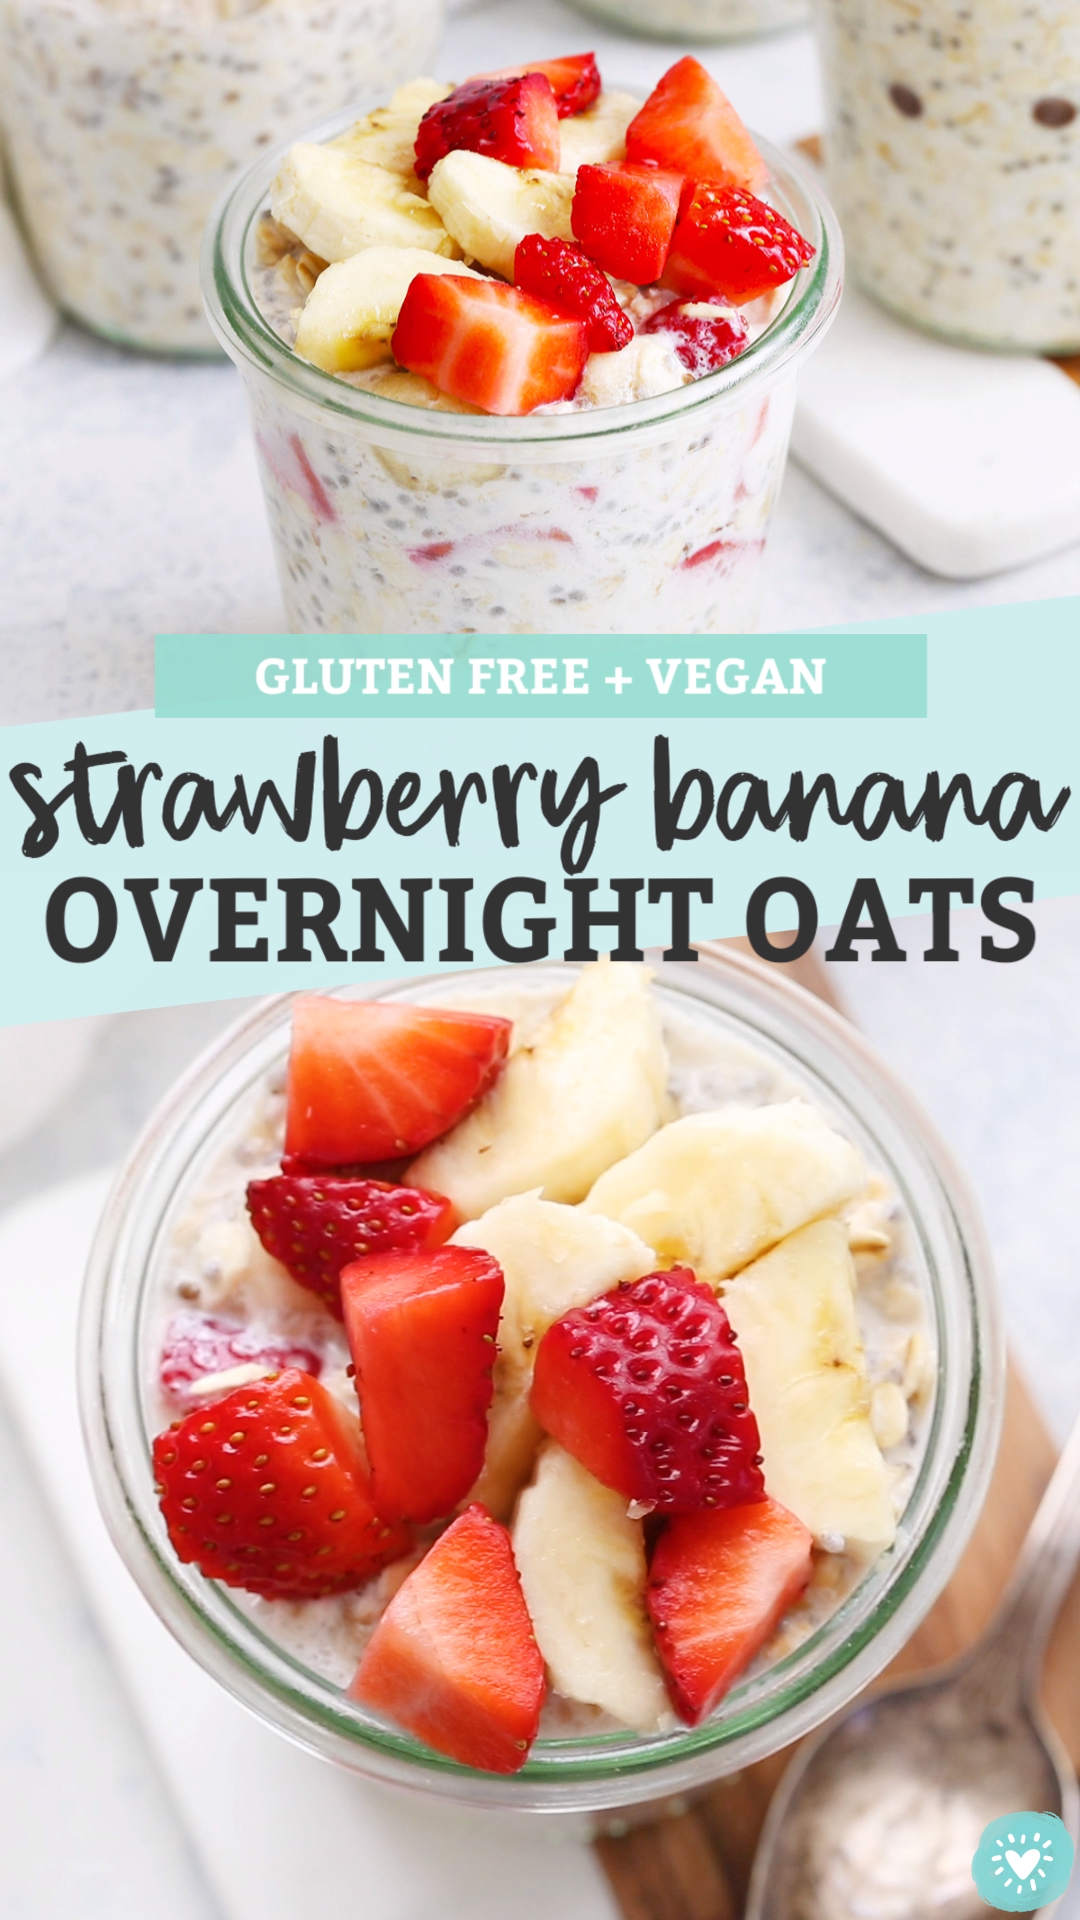 Strawberry Banana Overnight Oats (Gluten Free + Vegan)